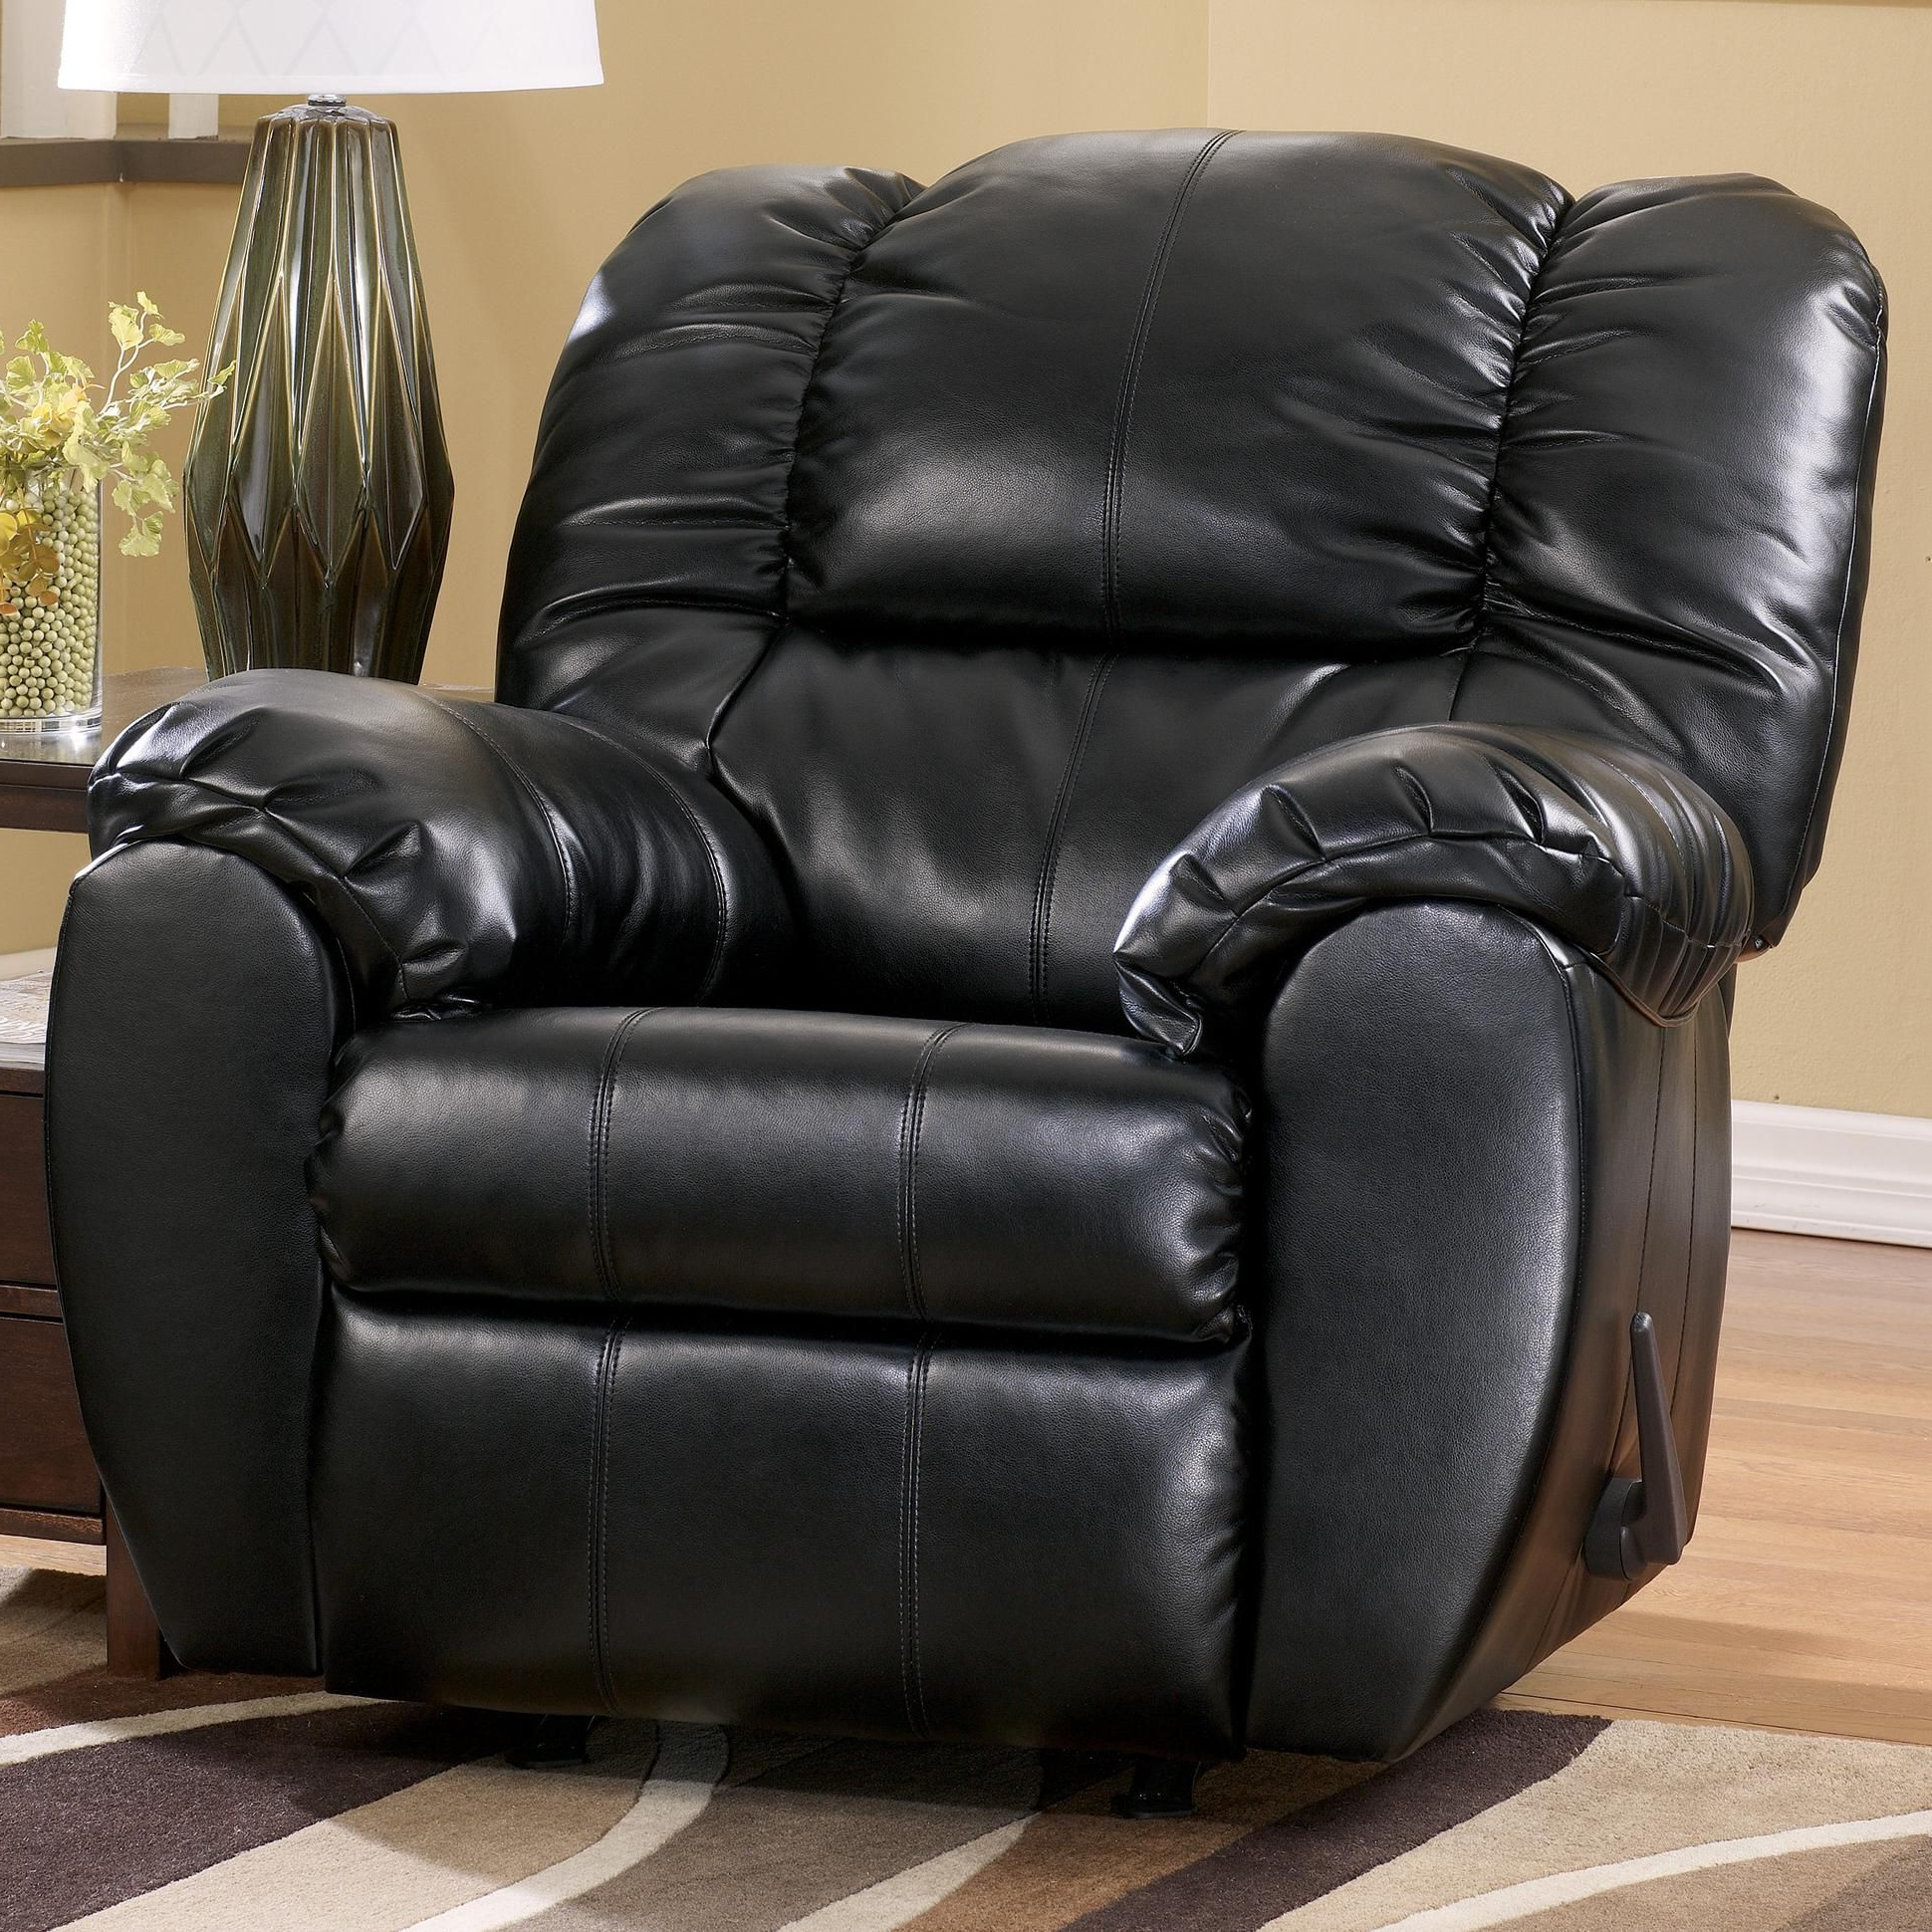 Dylan Durablend – Onyx Bonded Leather Match Rocker Recliner Pertaining To Current Declan 3 Piece Power Reclining Sectionals With Left Facing Console Loveseat (View 8 of 20)